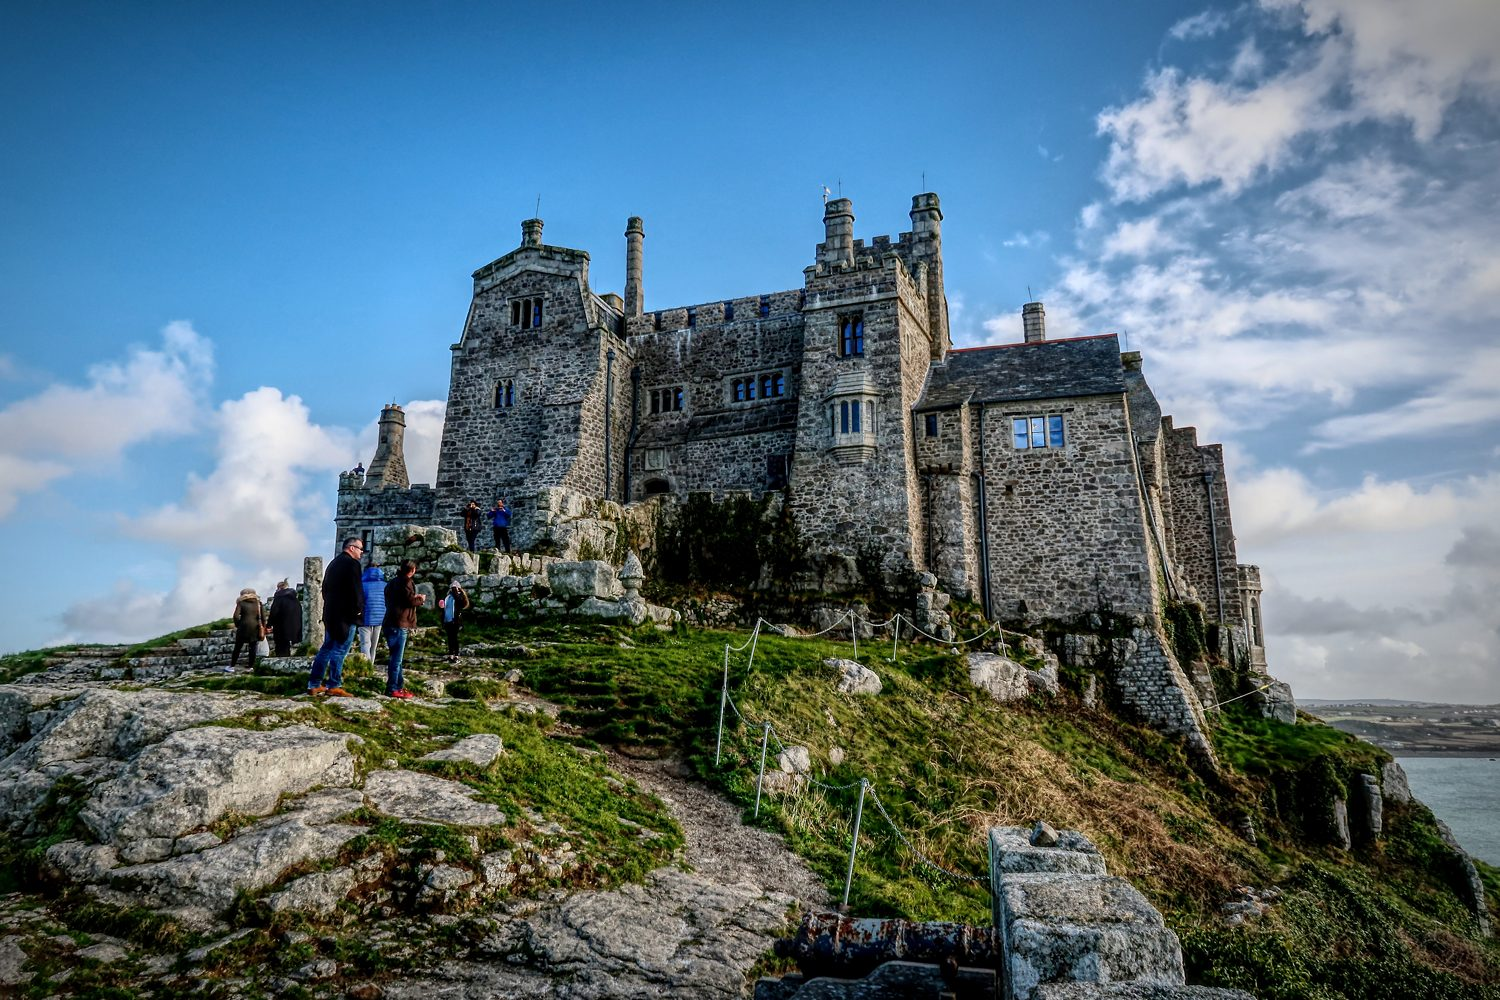 St Aubyn ancestral home on St Michaels Mount